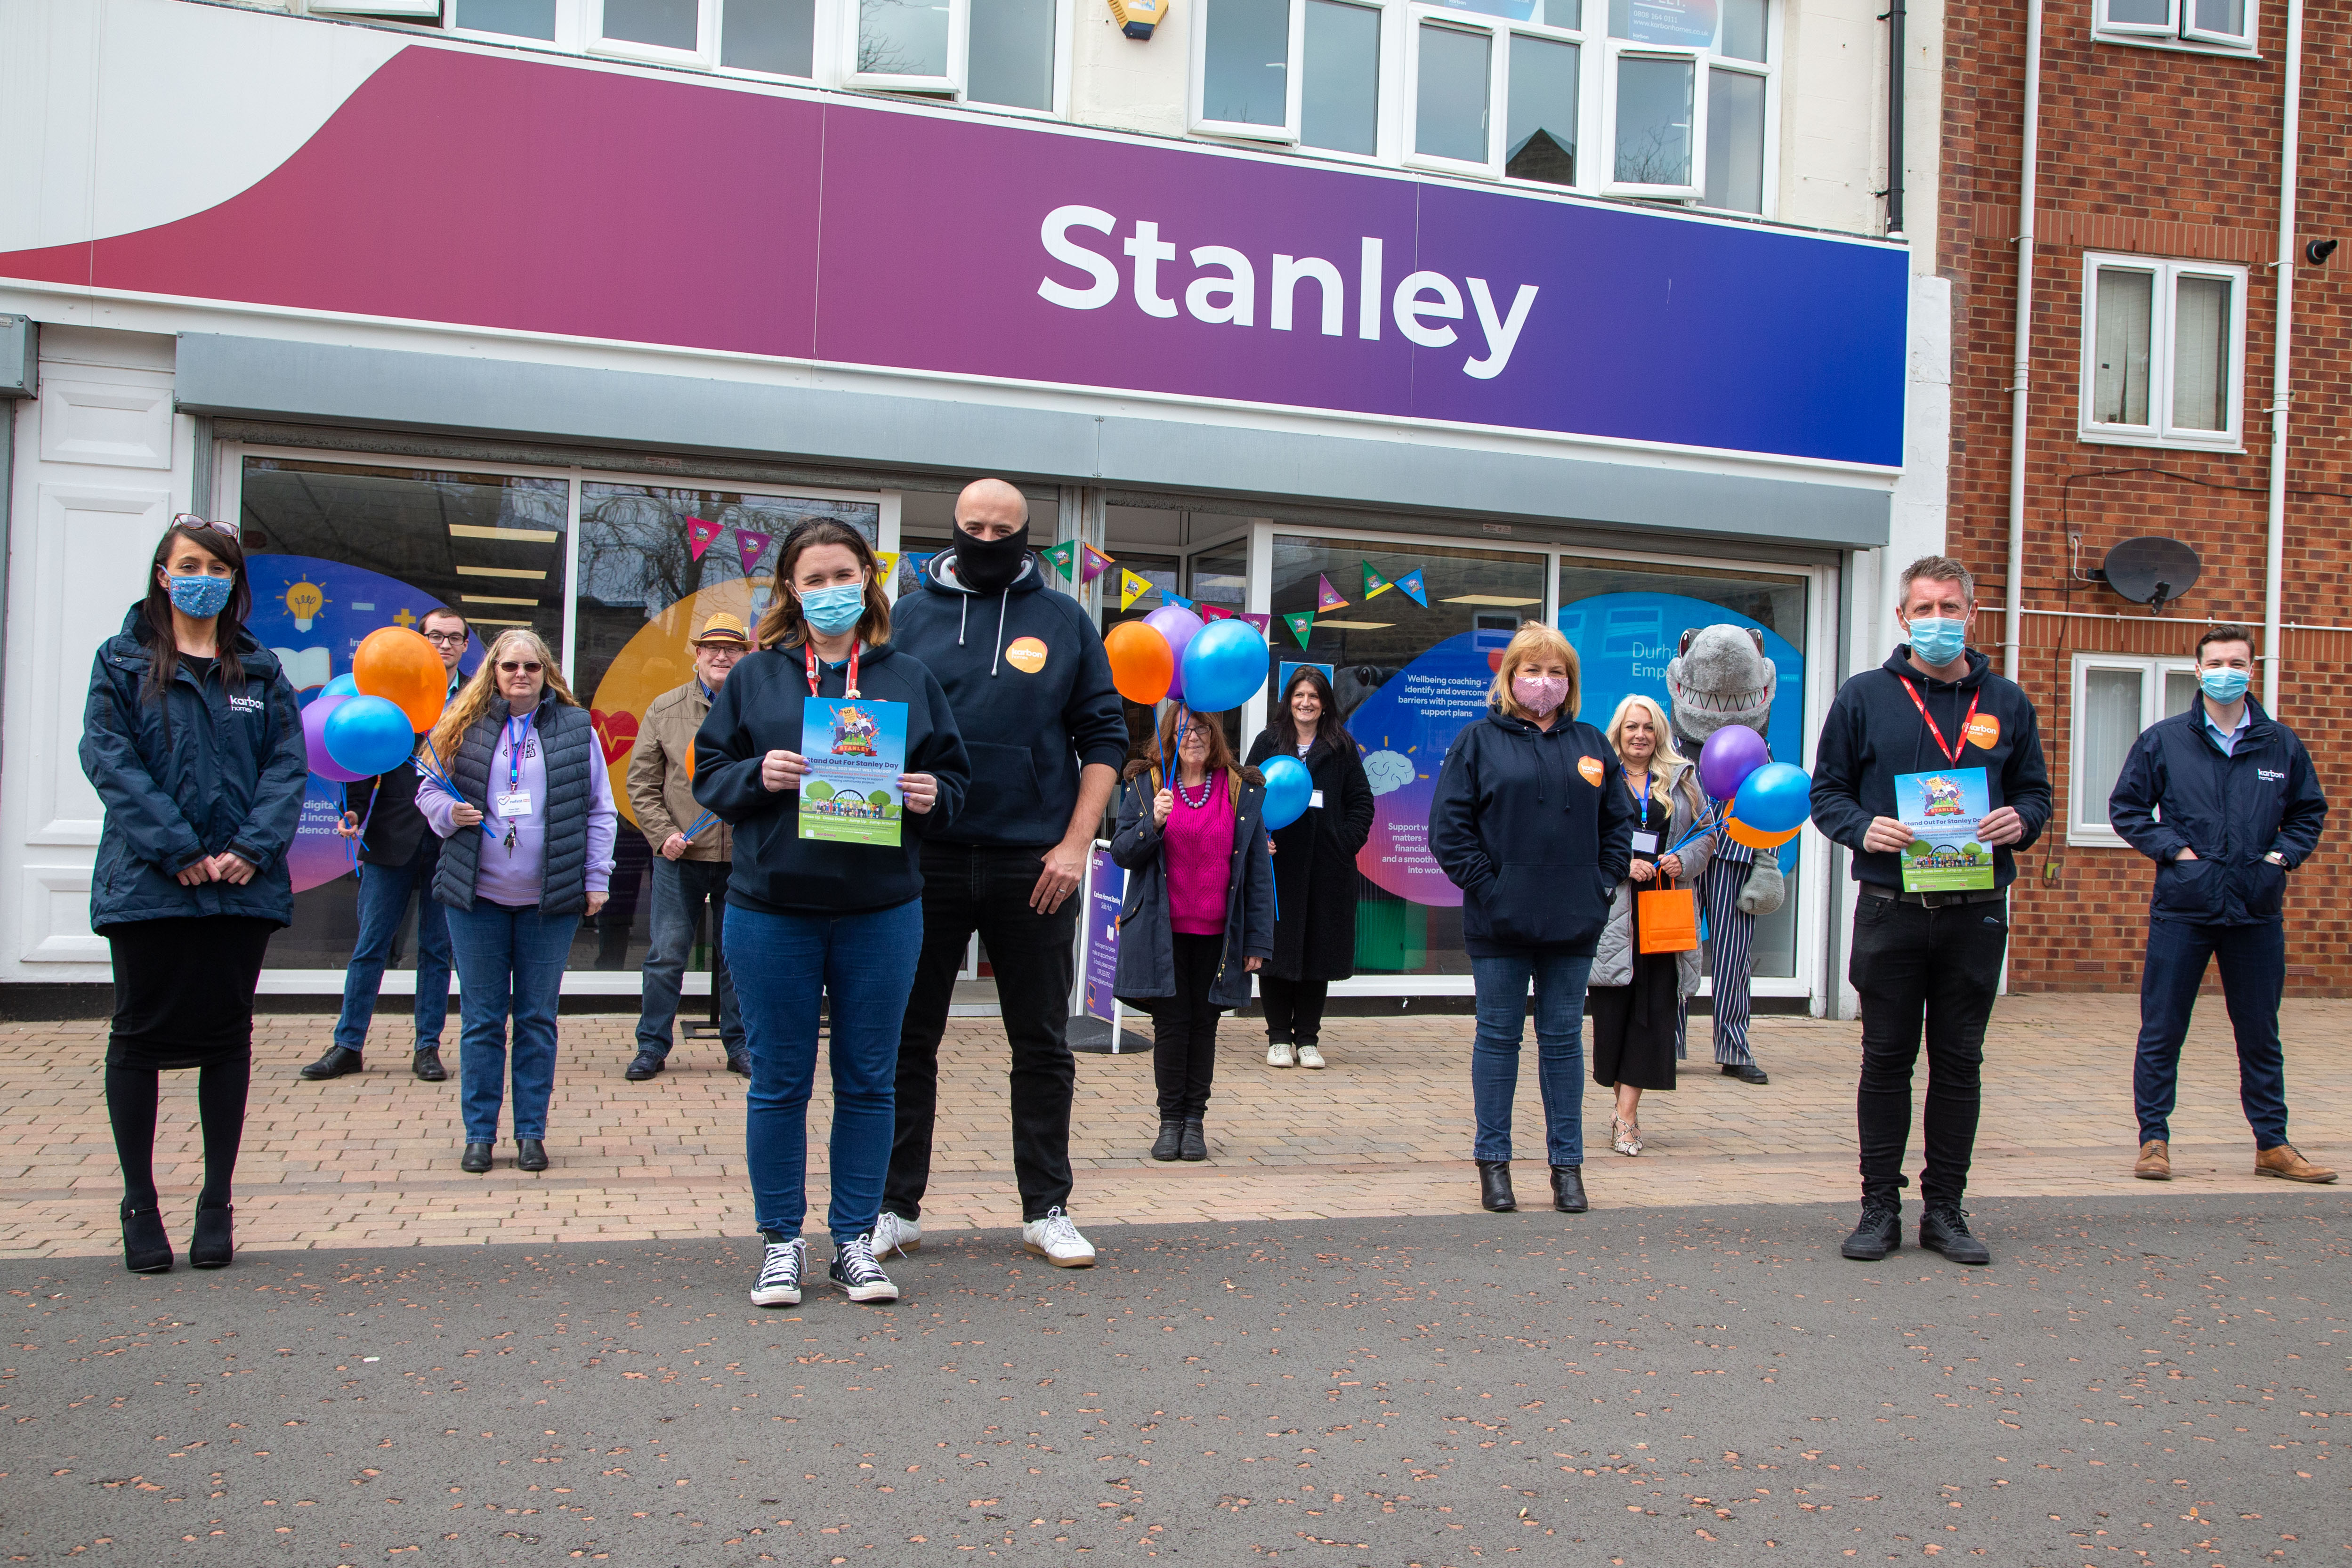 Stand Out for Stanley Day